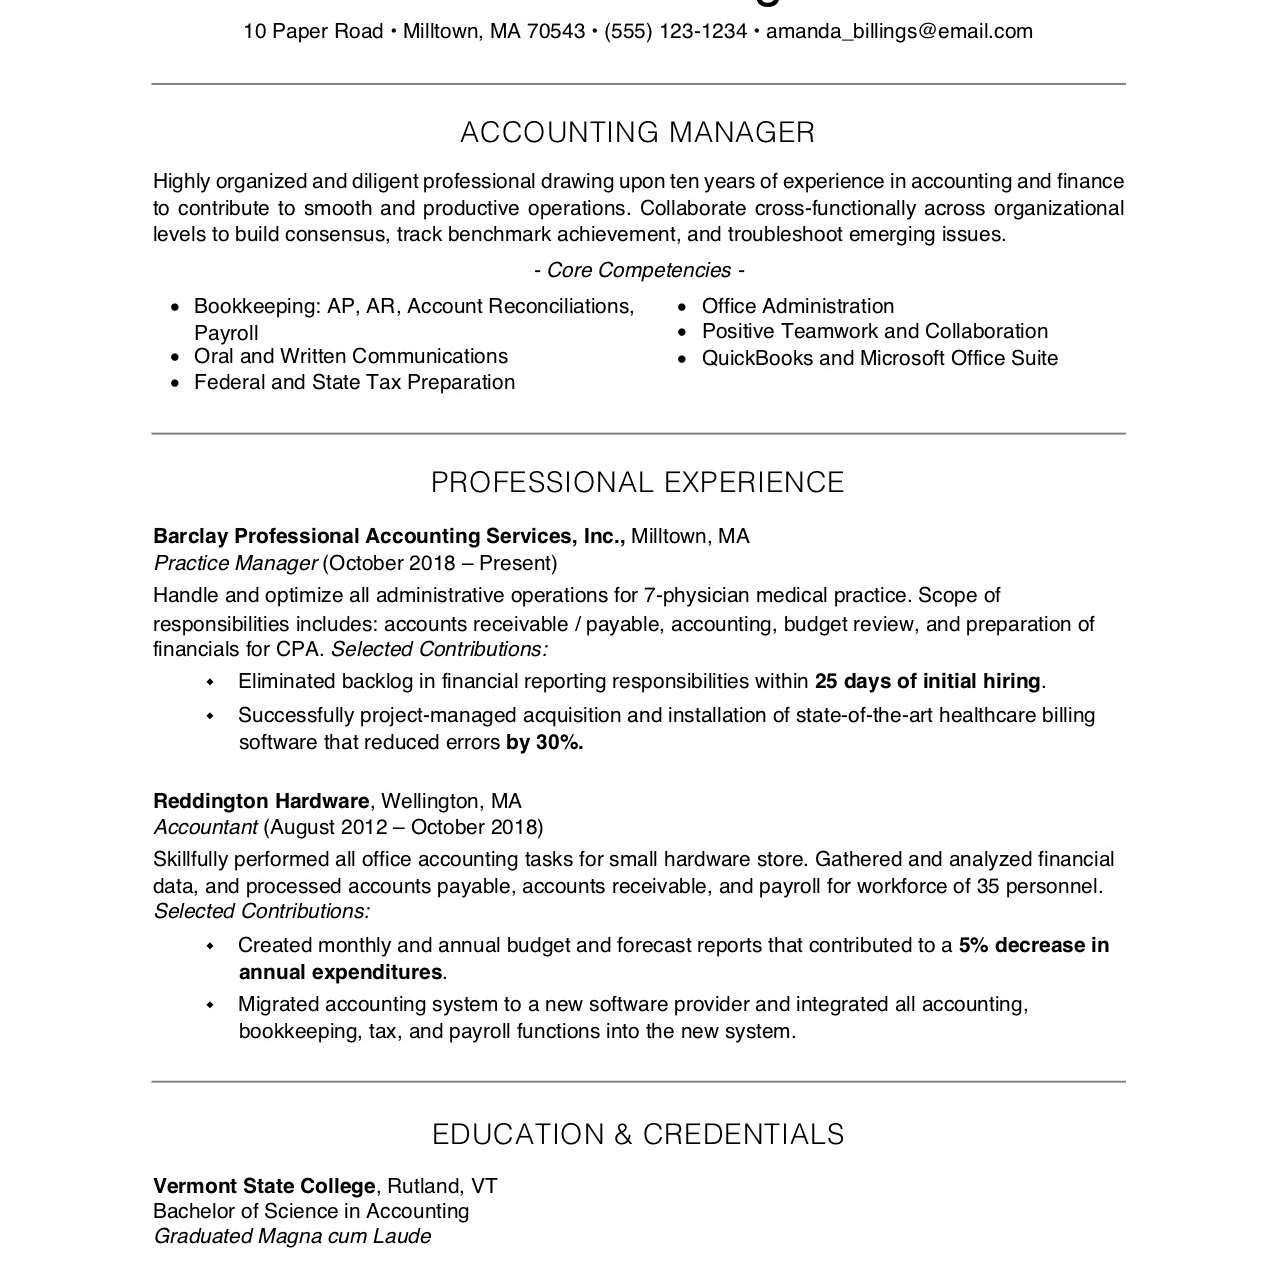 free professional resume examples and writing tips samples 2063596res1 lyrics police Resume Professional Resume Writing Samples